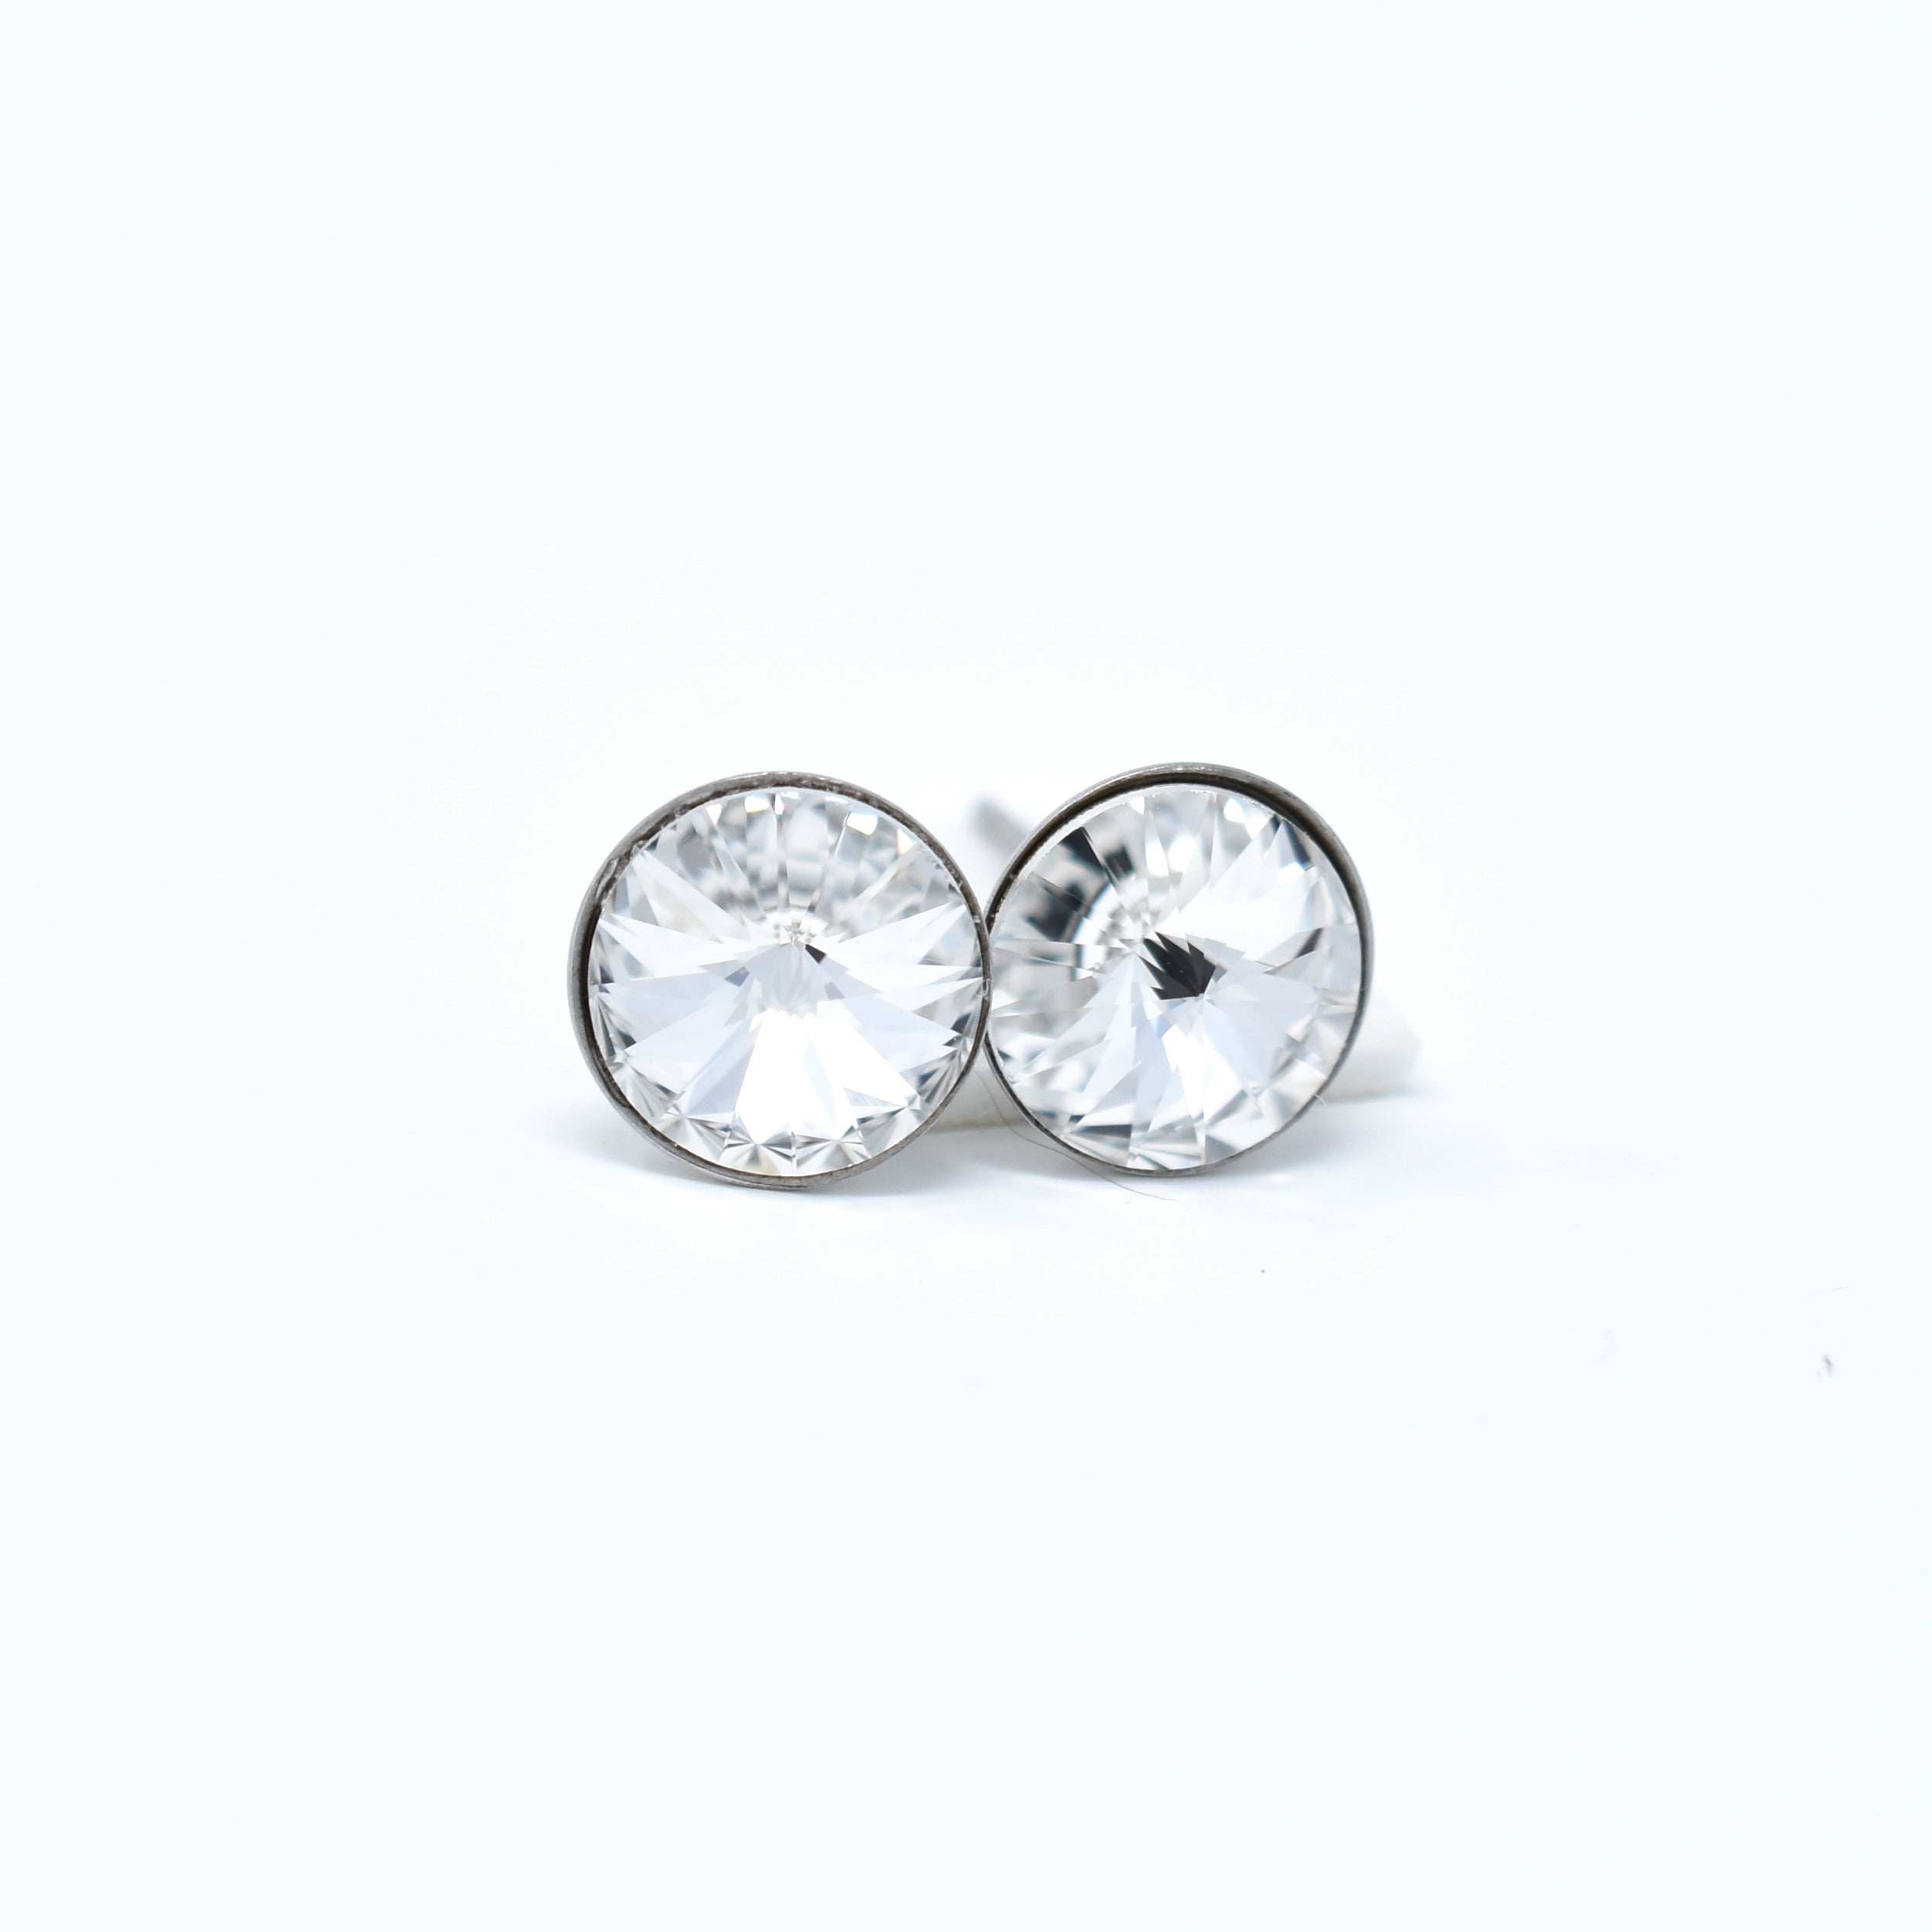 Stainless Steel Swarovski Studs - 8mm